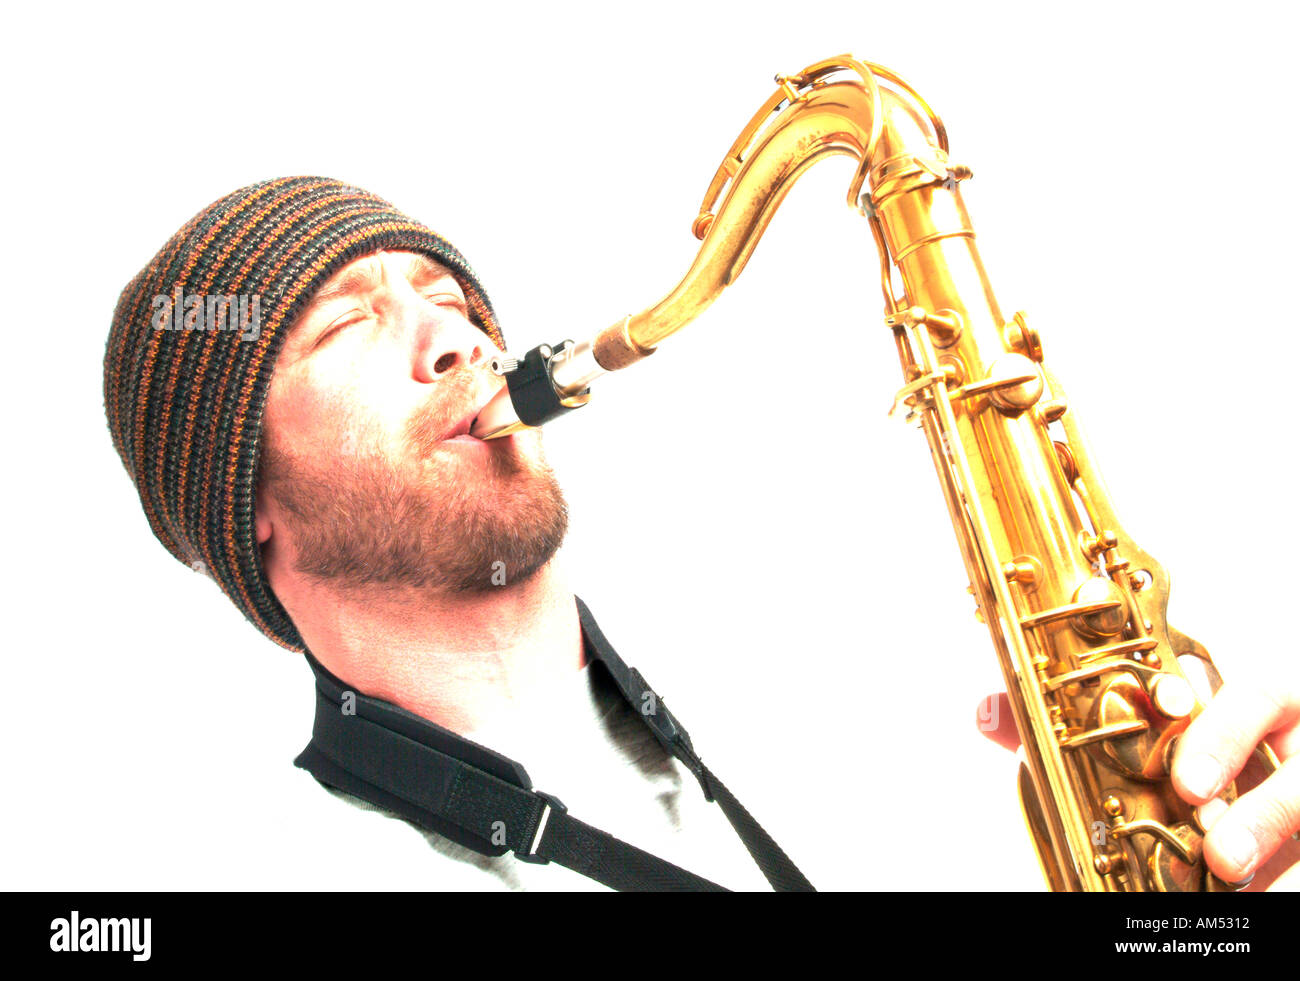 young musician playing a saxophone - Stock Image